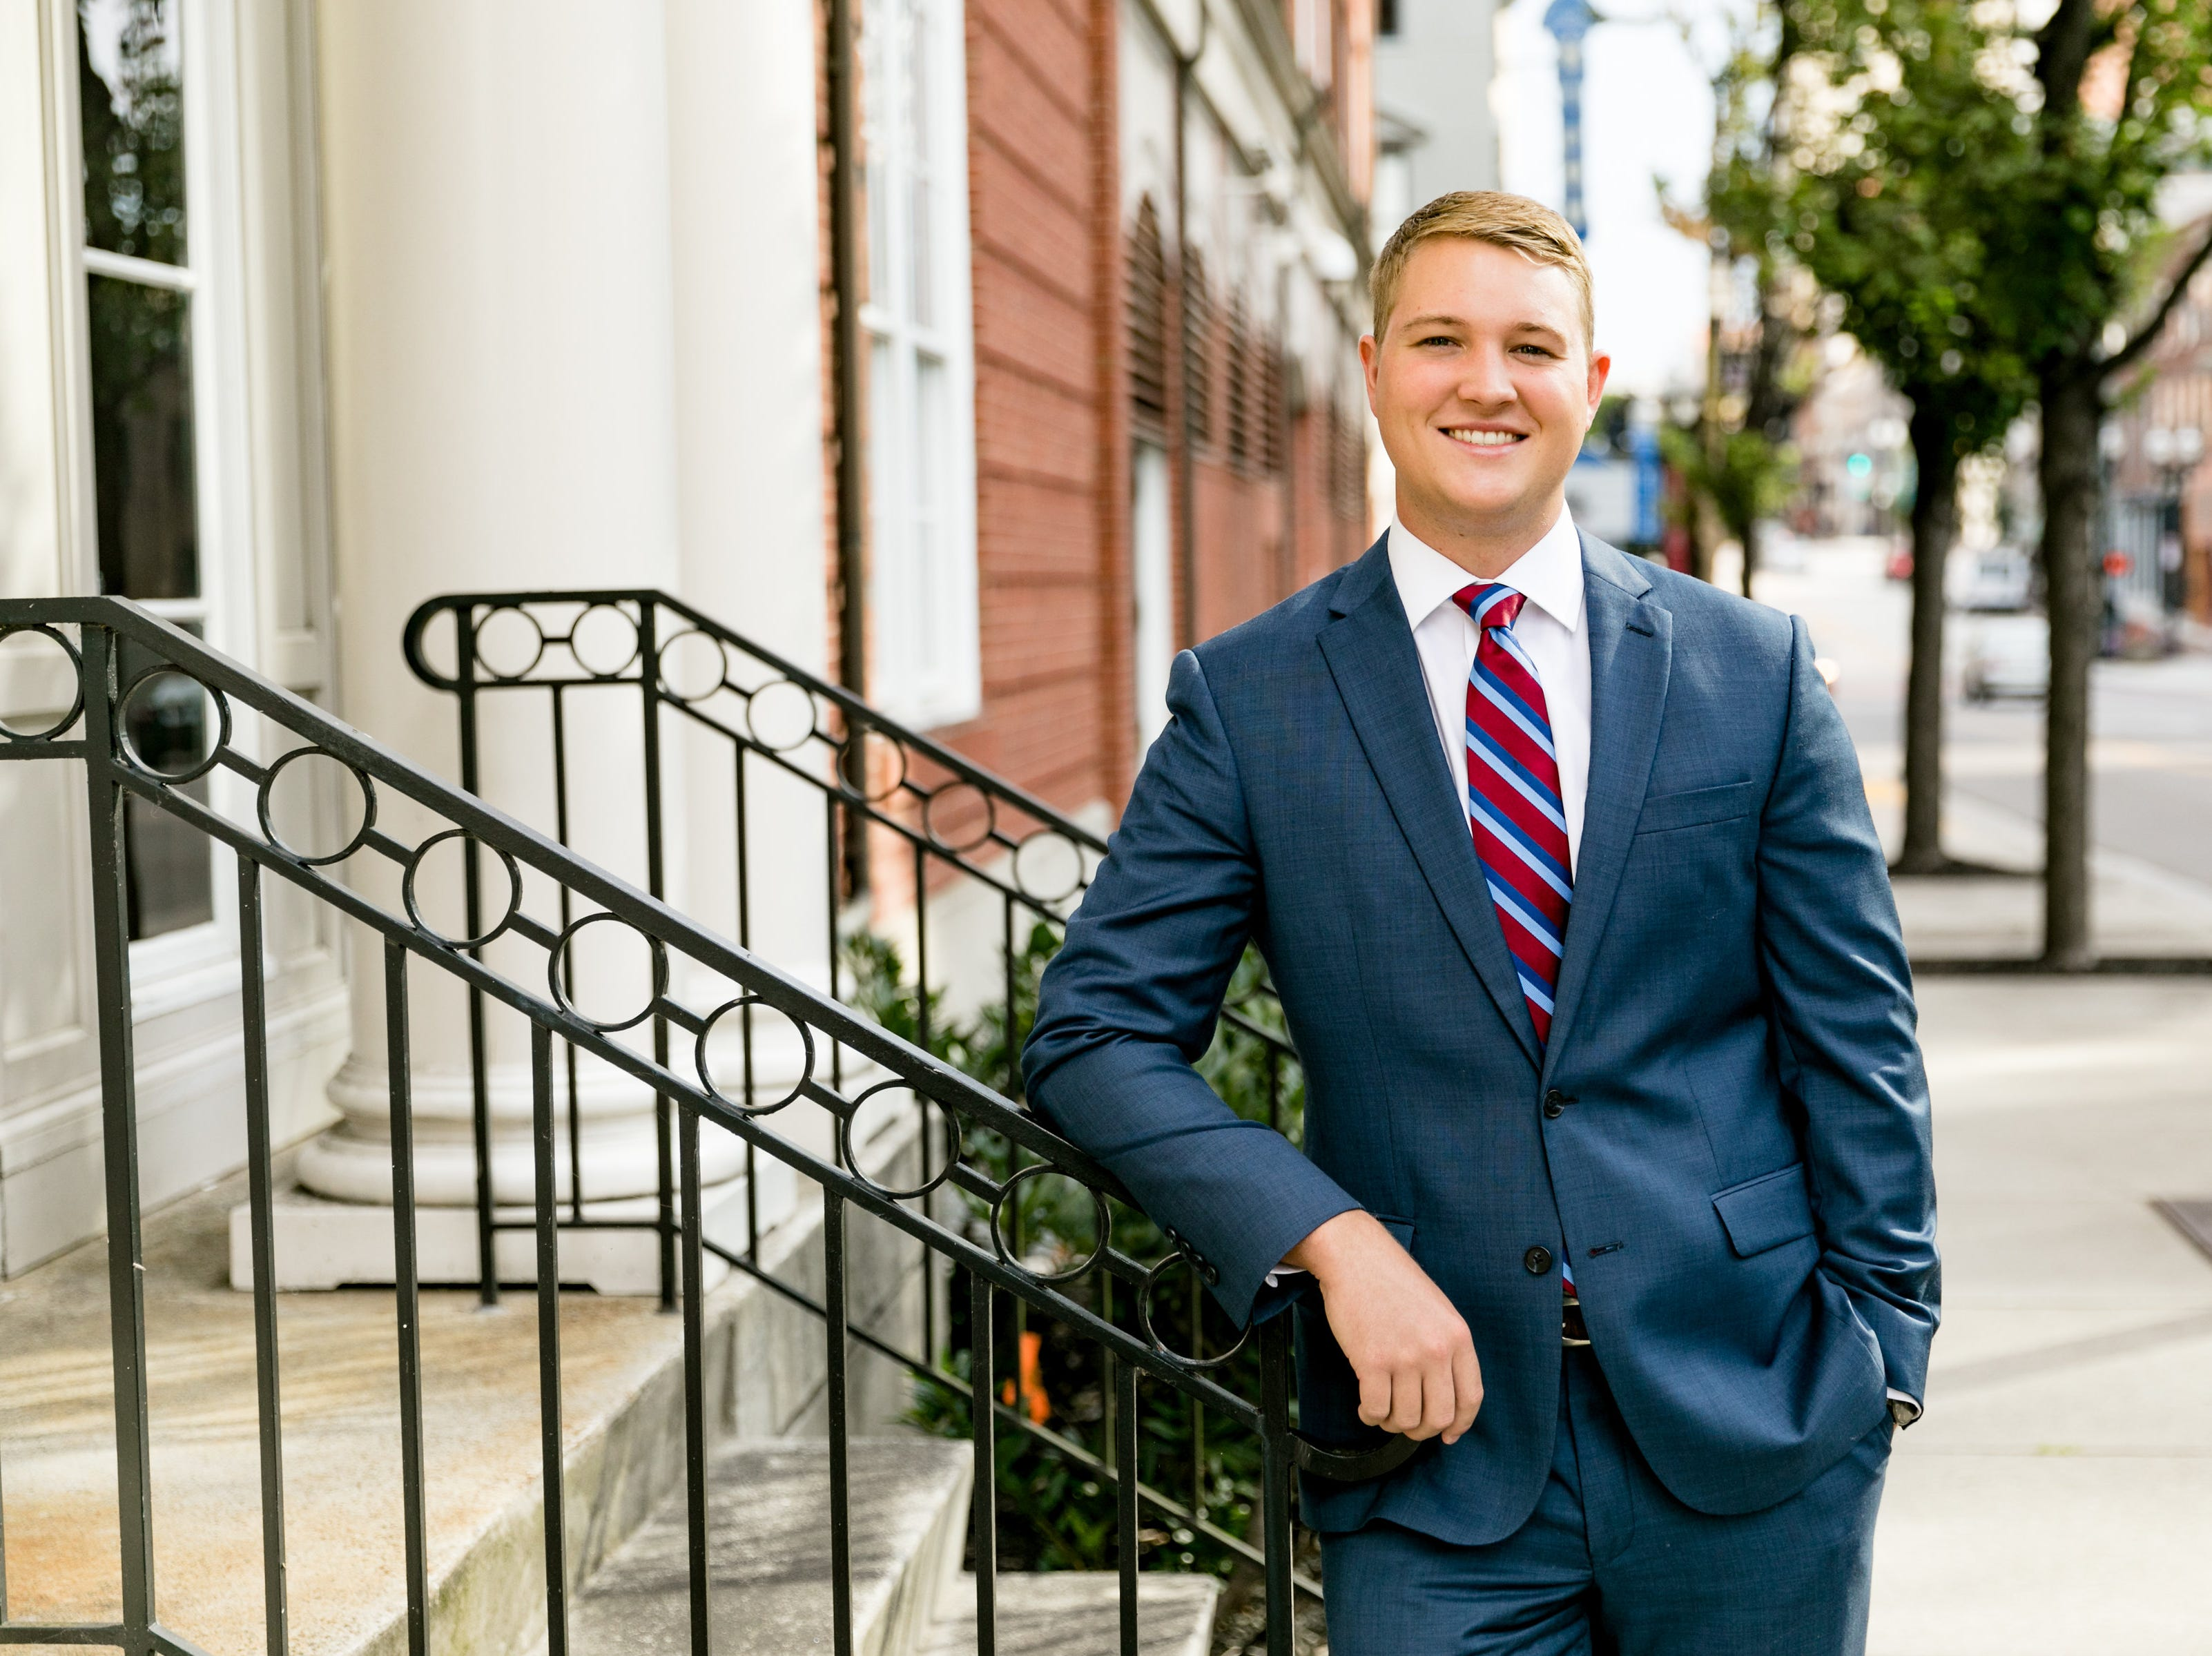 Burkhart & Company, P.C., a Knoxville tax and business advisory CPA firm, hired Cole Harris as tax associate.